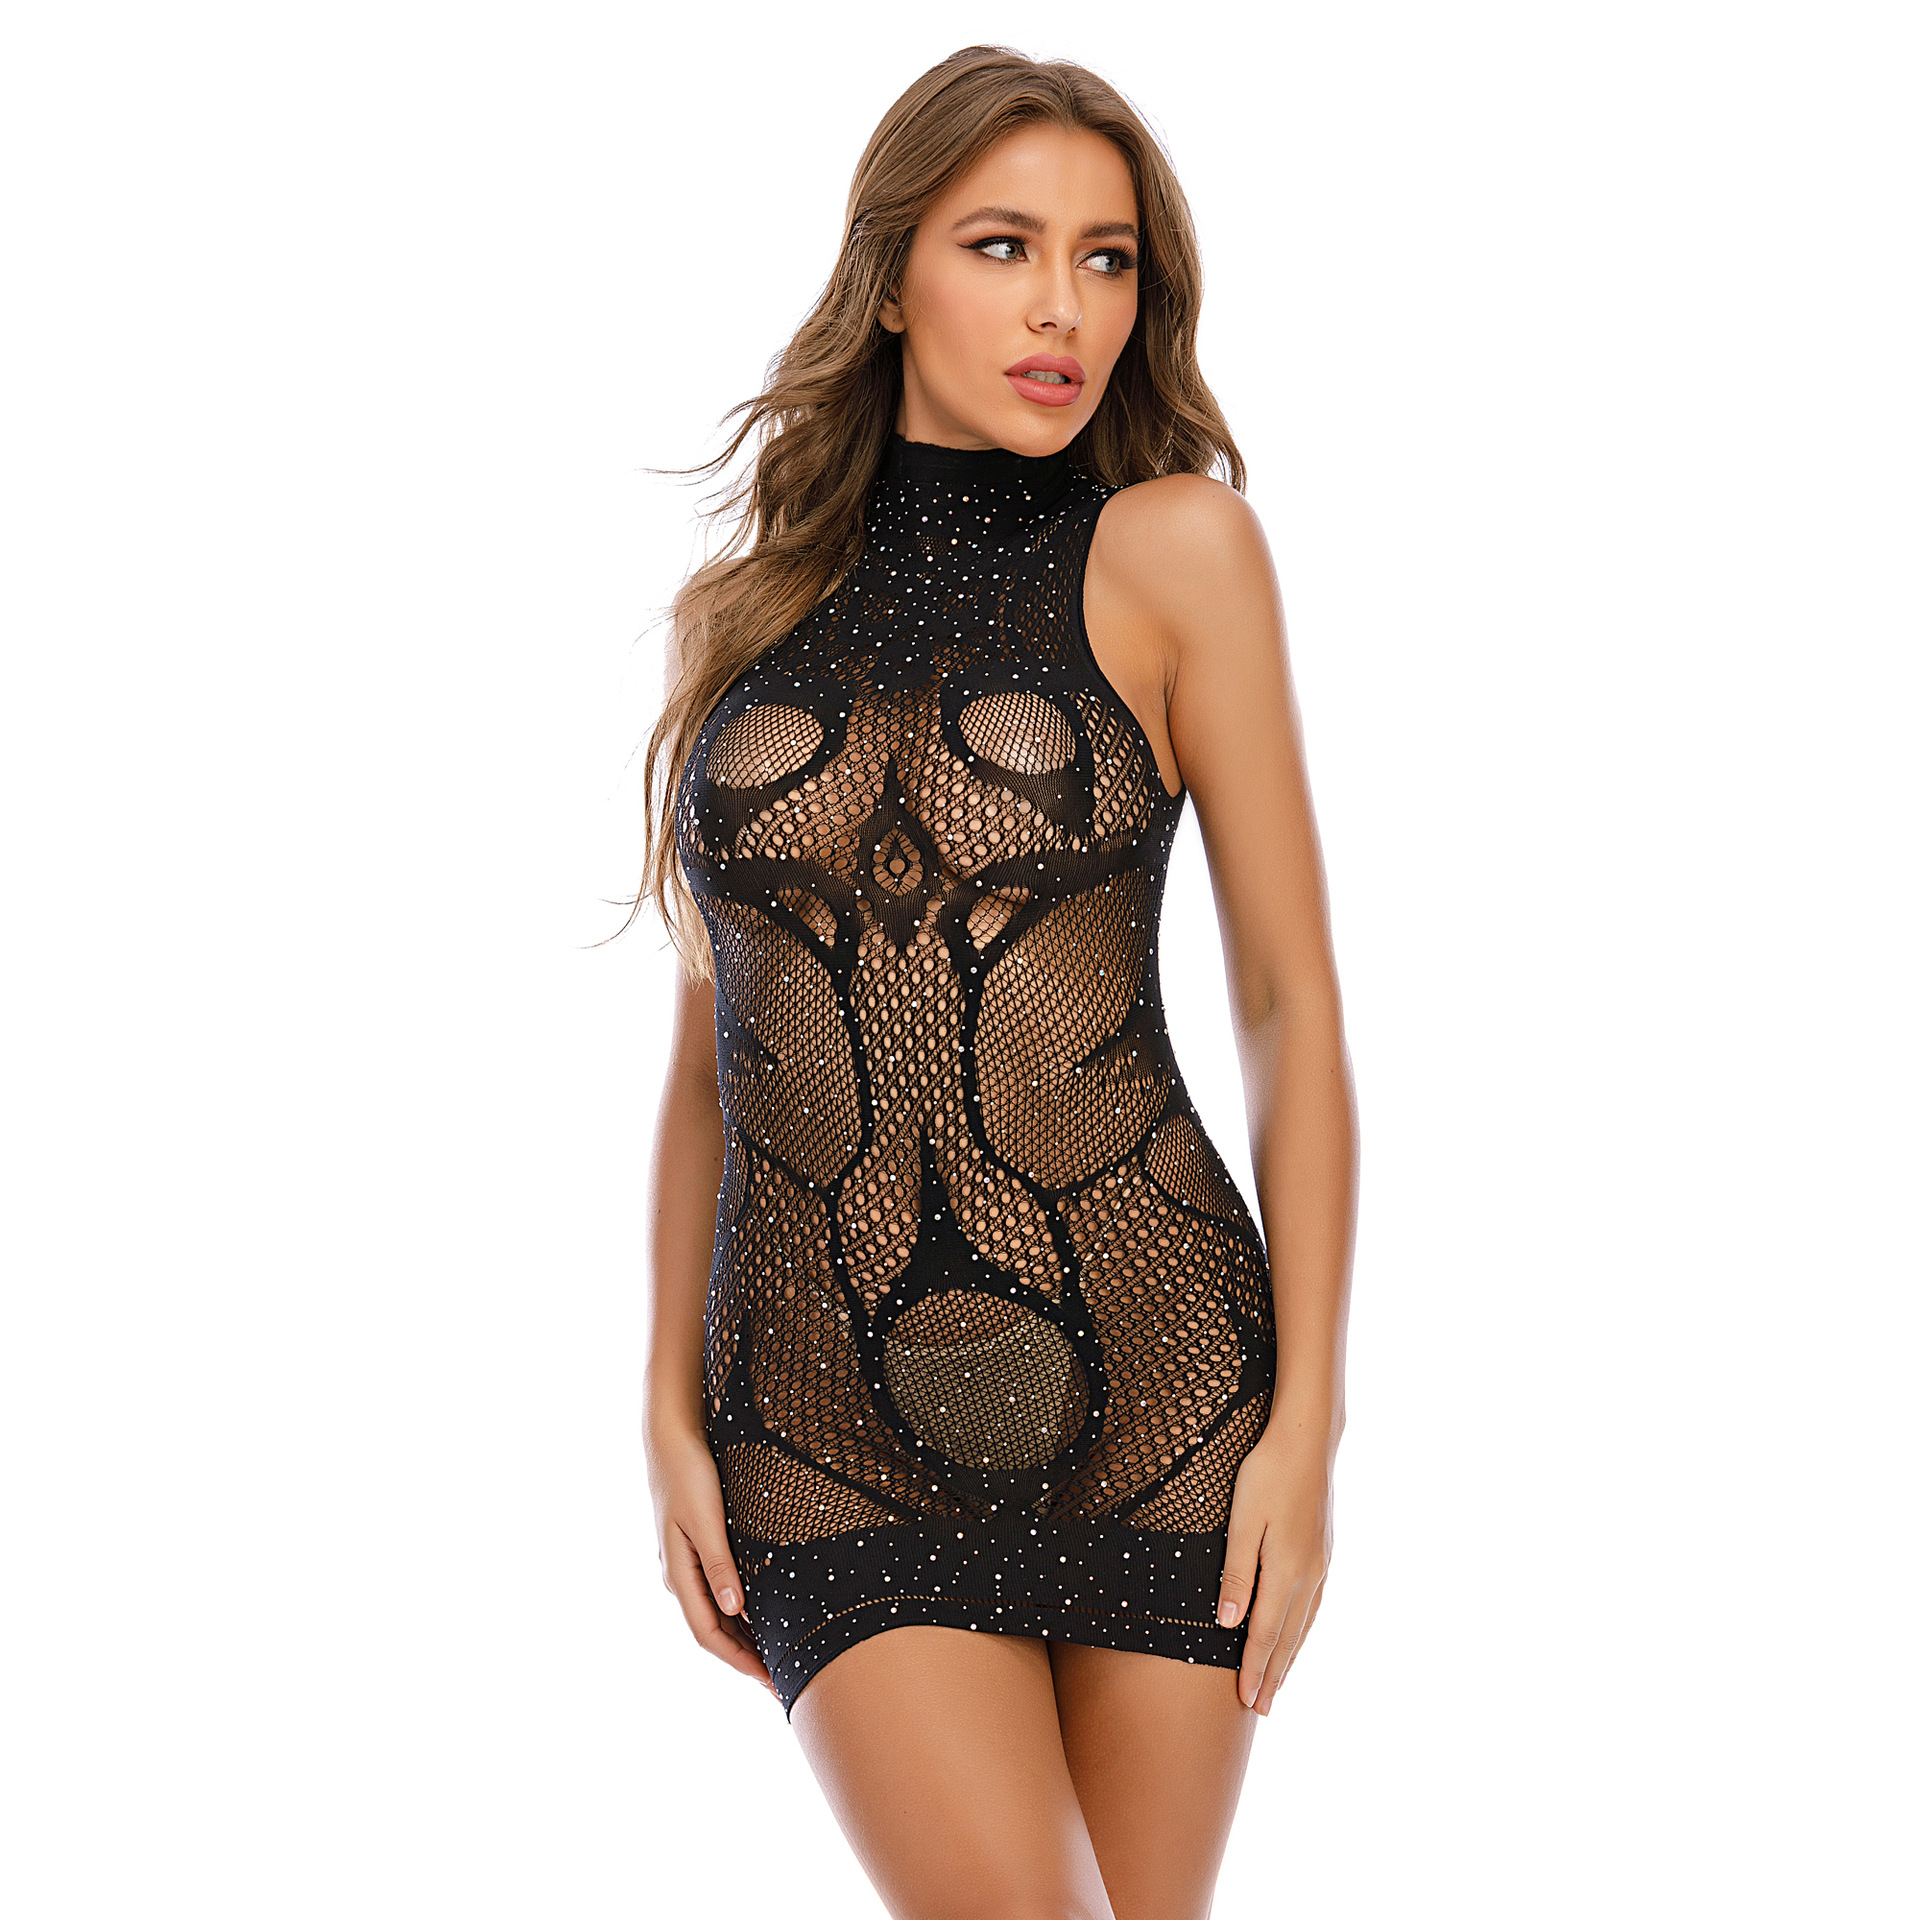 Lace fishnet Bodystocking (4).jpg